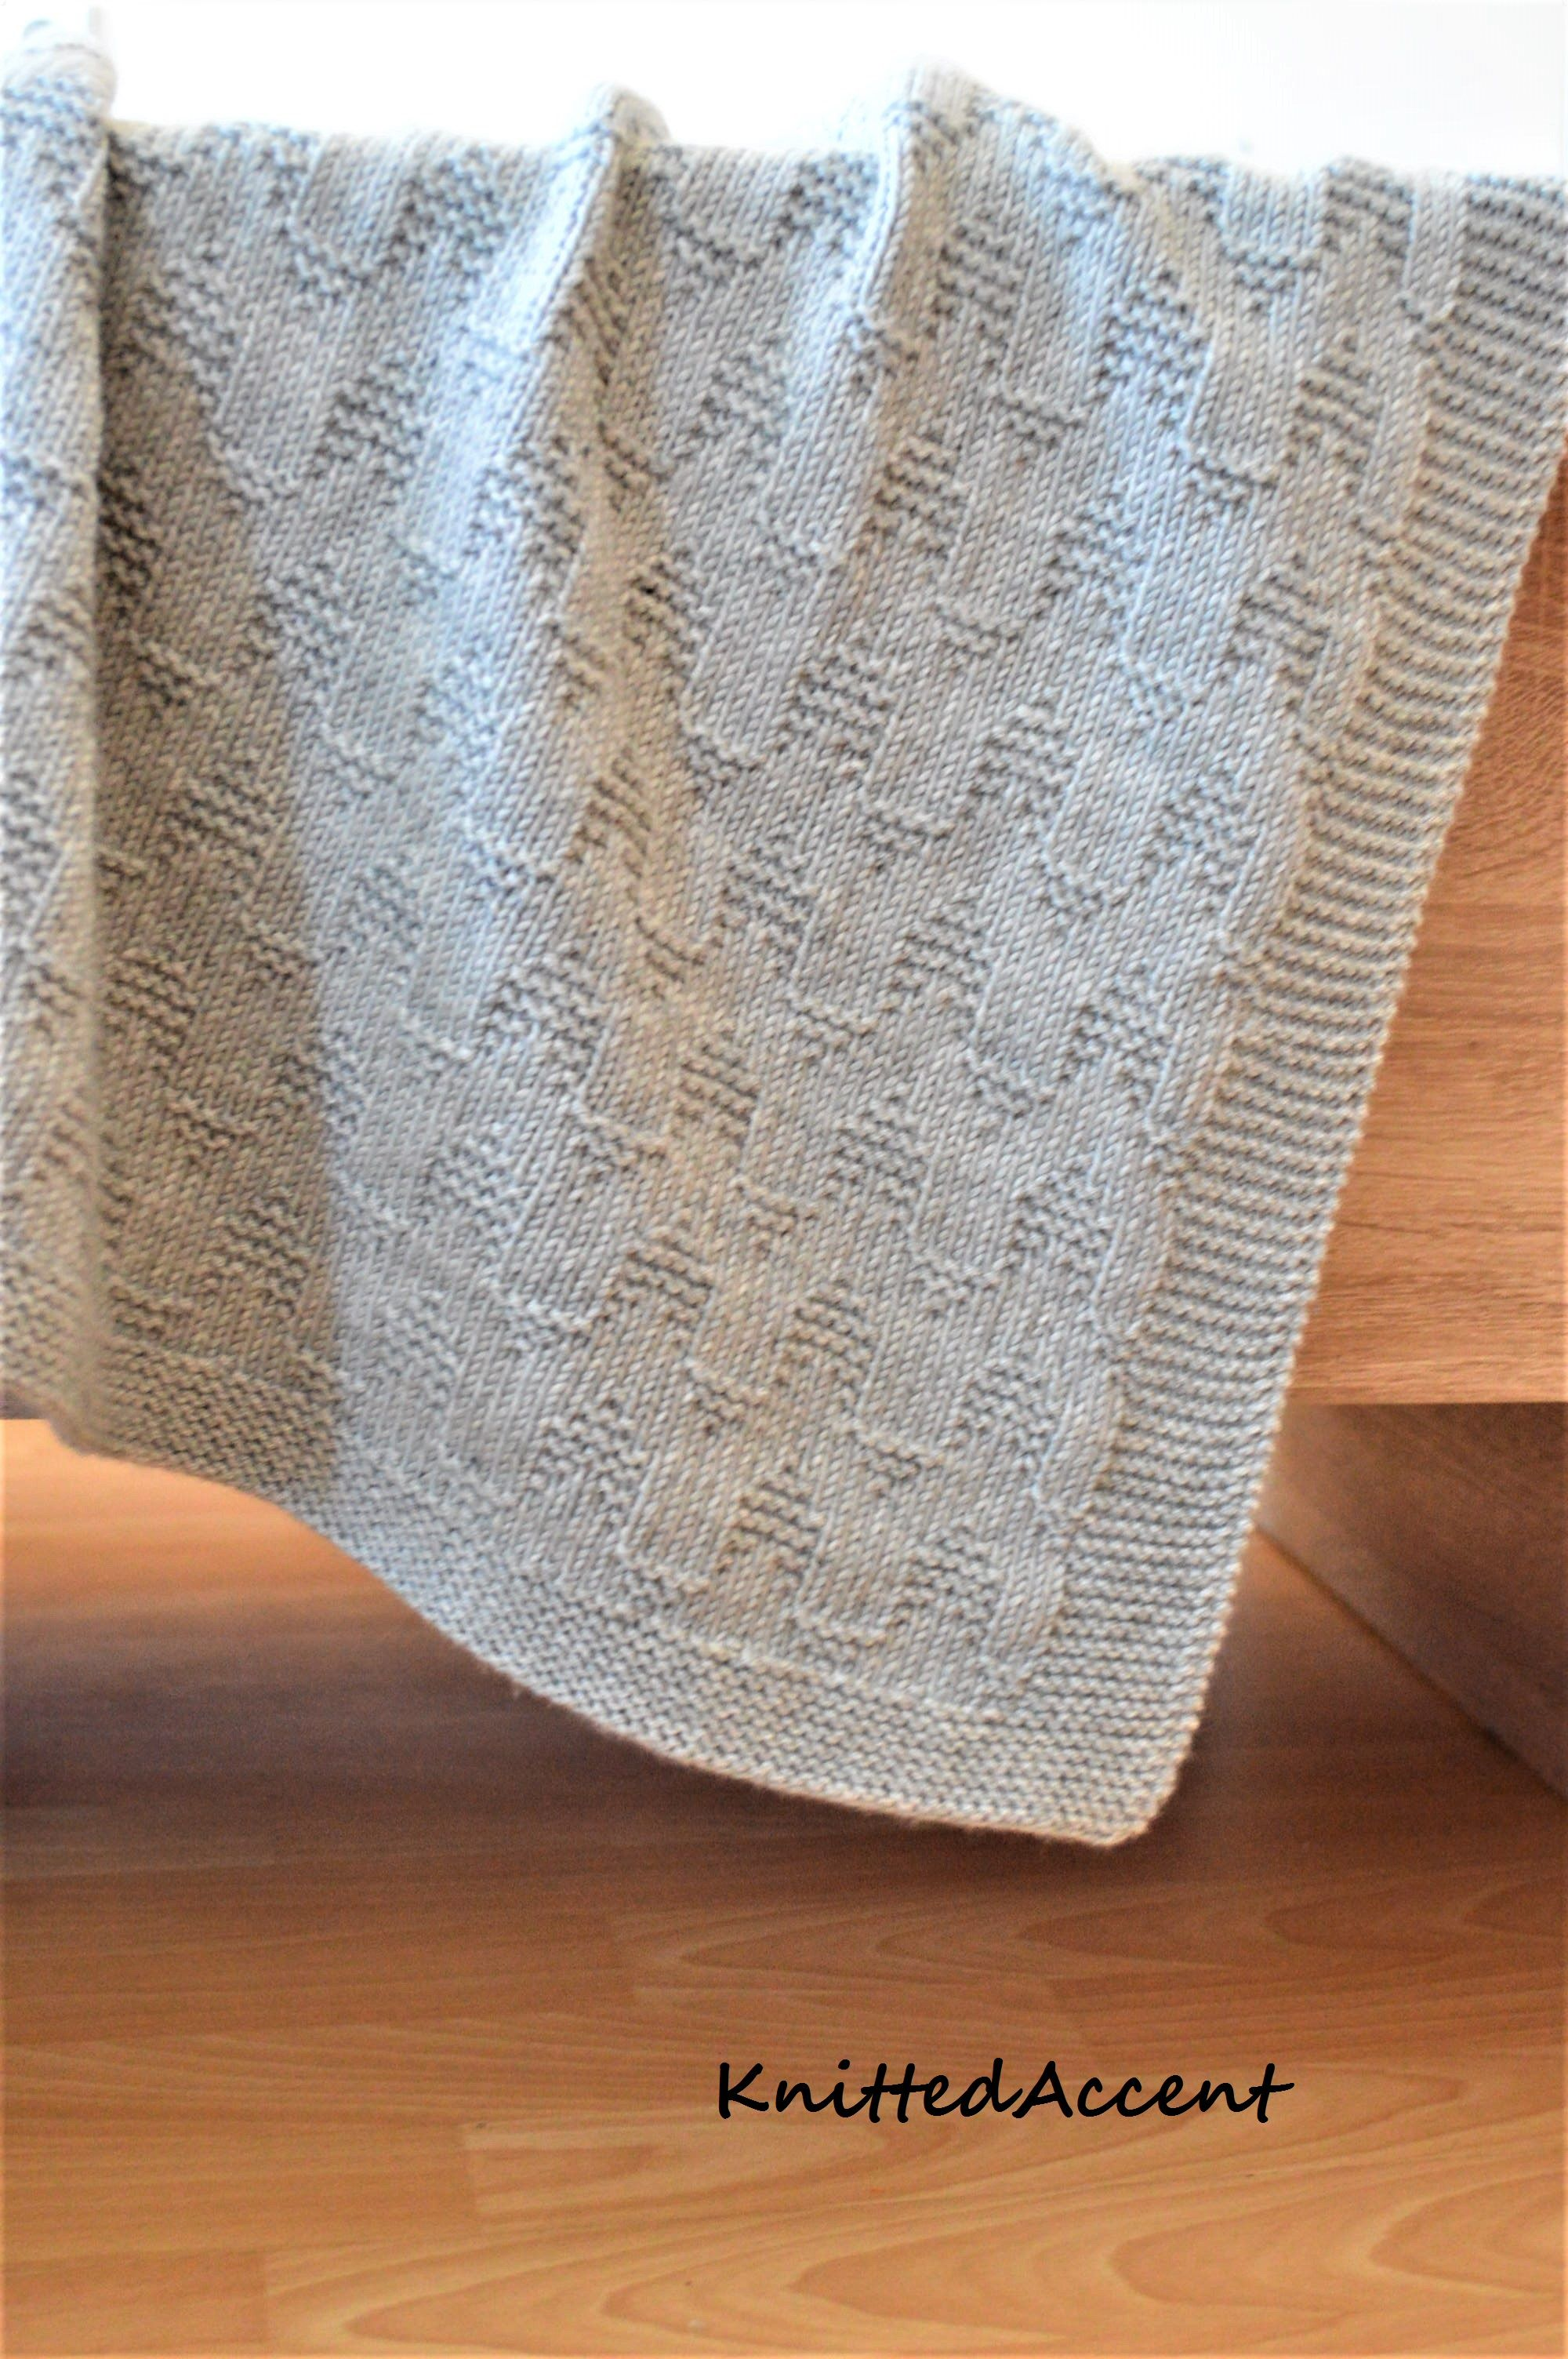 Knitting patternonly in english written instructions with